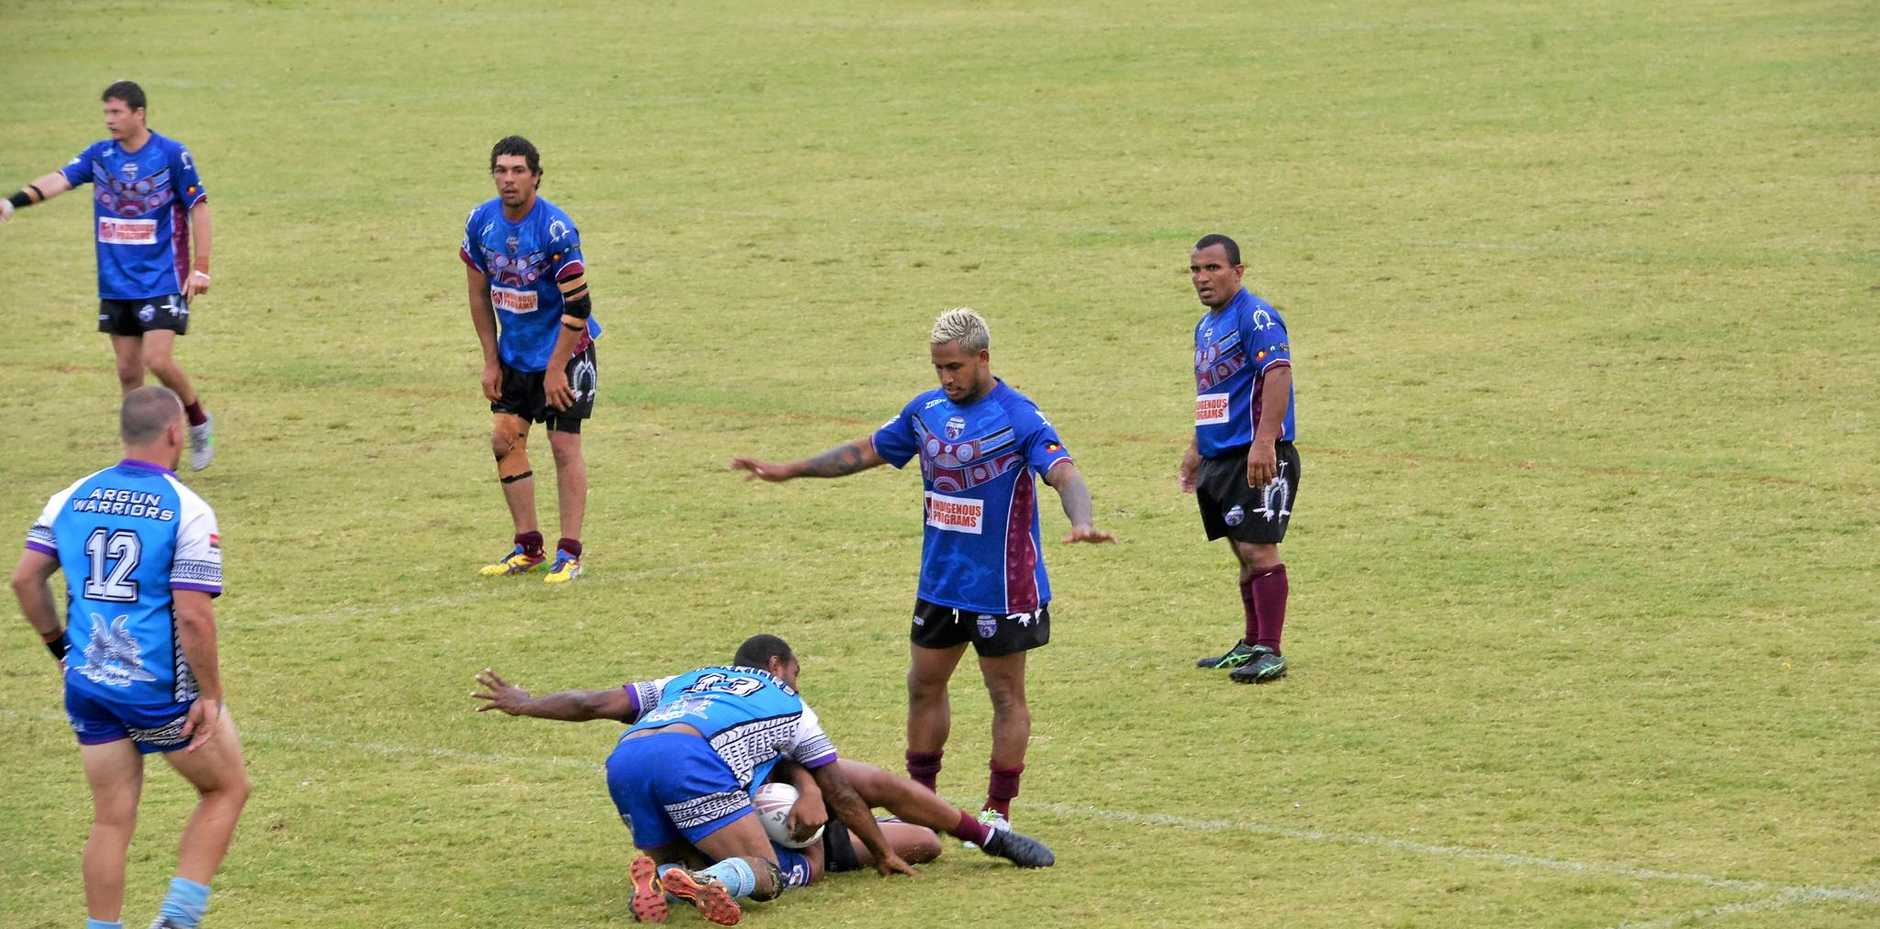 STAR: NRL player Ben Barba waits to play the ball in the grand final match.